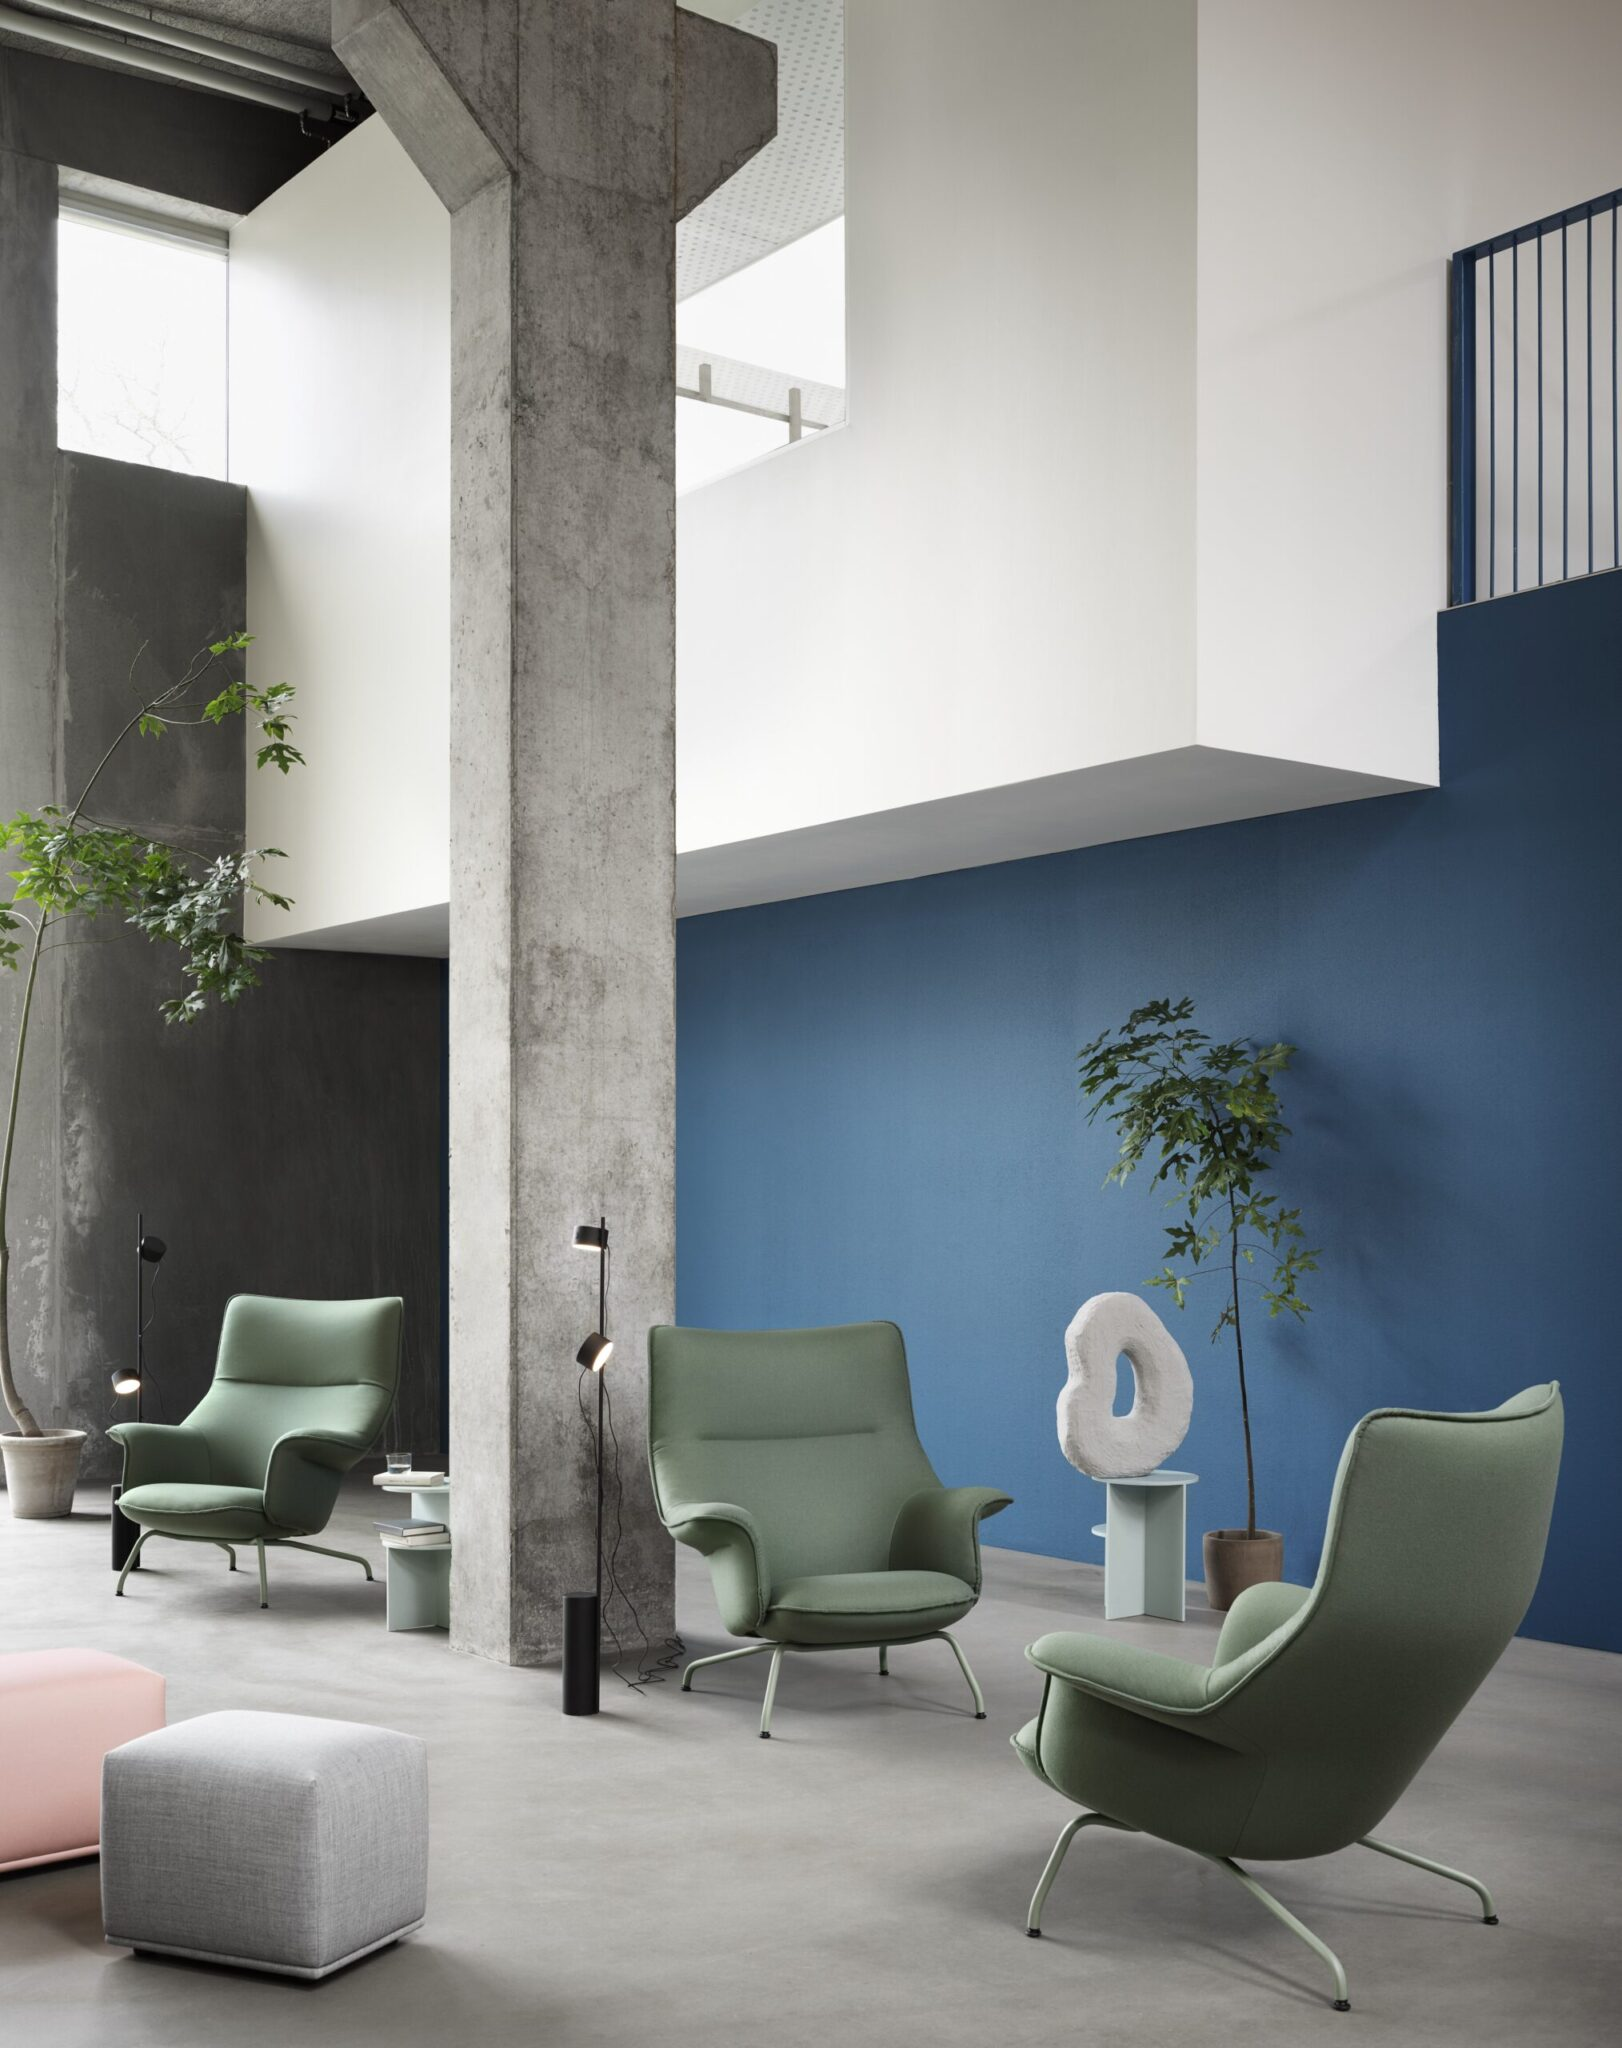 doze-lounge-chair-forest-nap-952-post-floor-lamp-halves-table-echo-pouf-remix-123-forest-nap-512-muuto-org-scaled